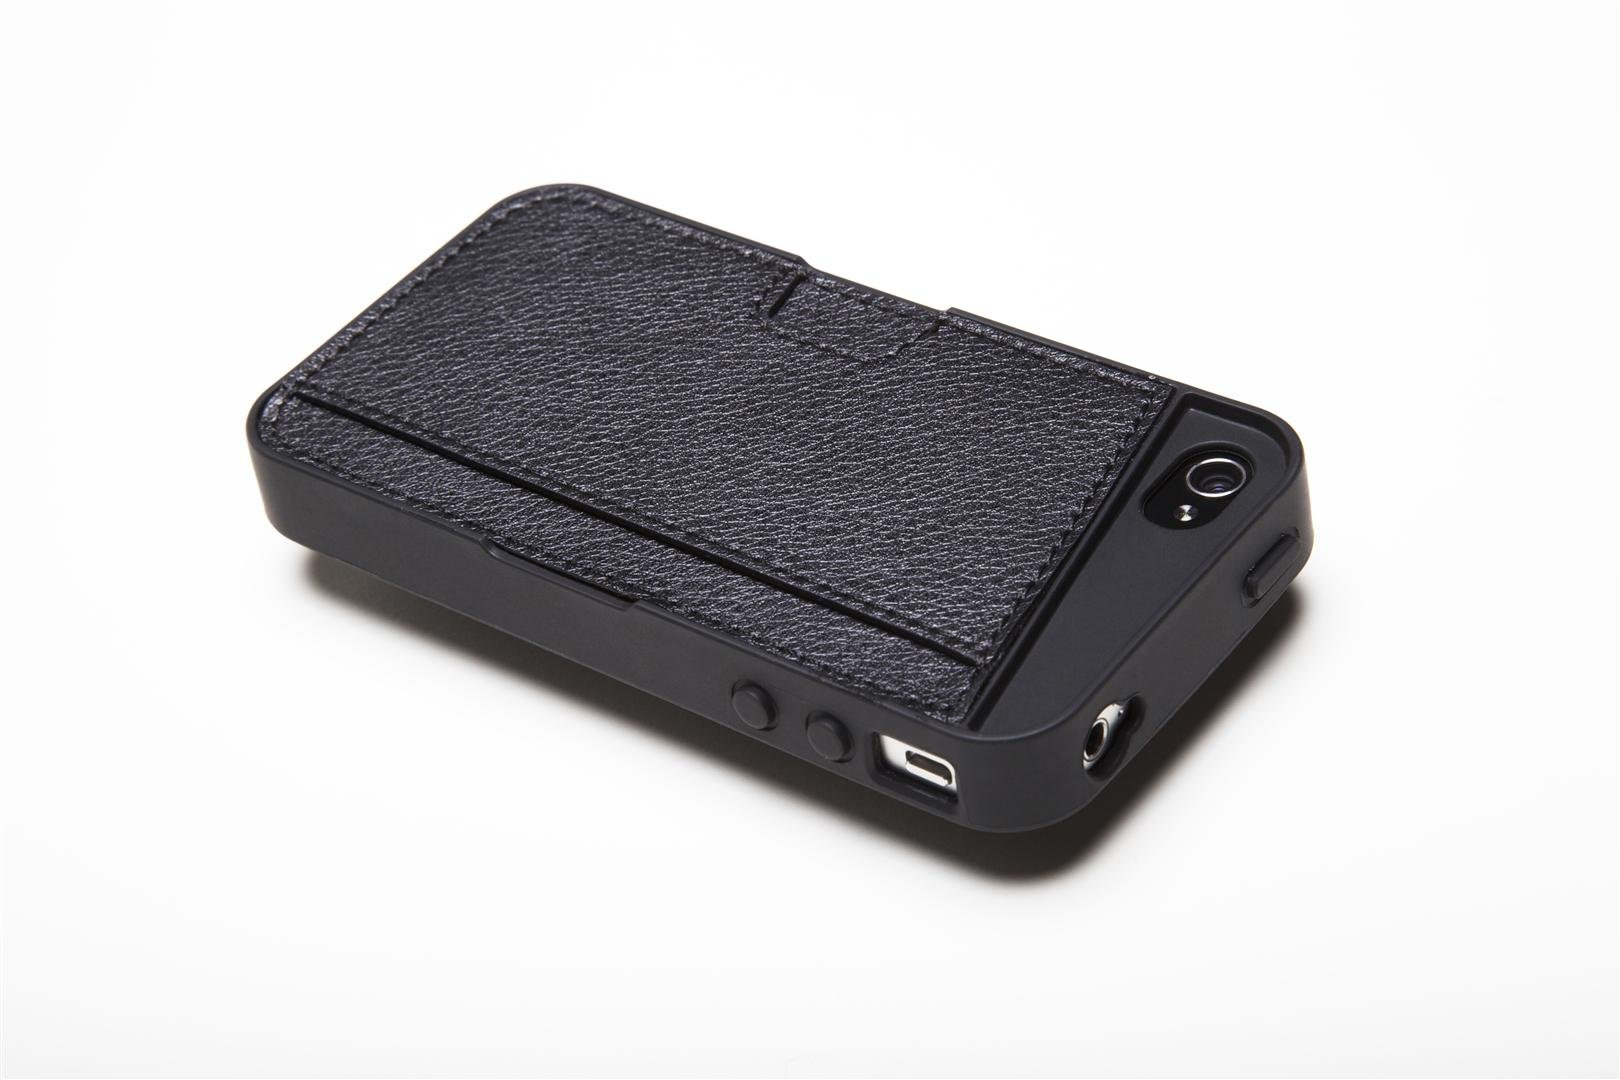 Silk iPhone 4/4S Wallet Case - Q CARD CASE [Slim Protective CM4 Cover] - Black Onyx by Silk (Image #9)